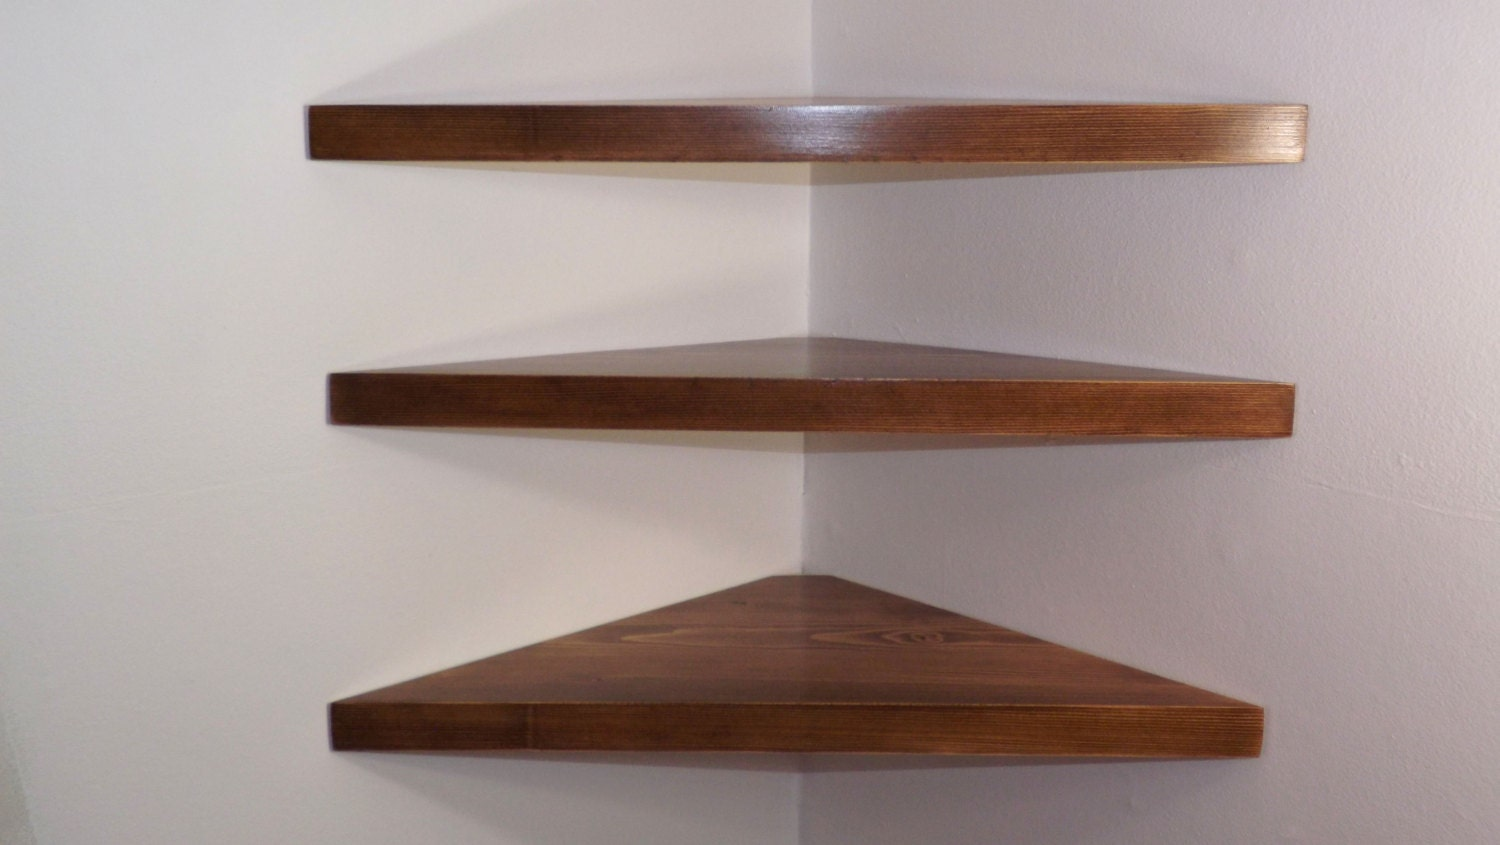 Set of 3 24 Inch Floating Corner Shelves with Custom Walnut Stain Handmade  in the USA